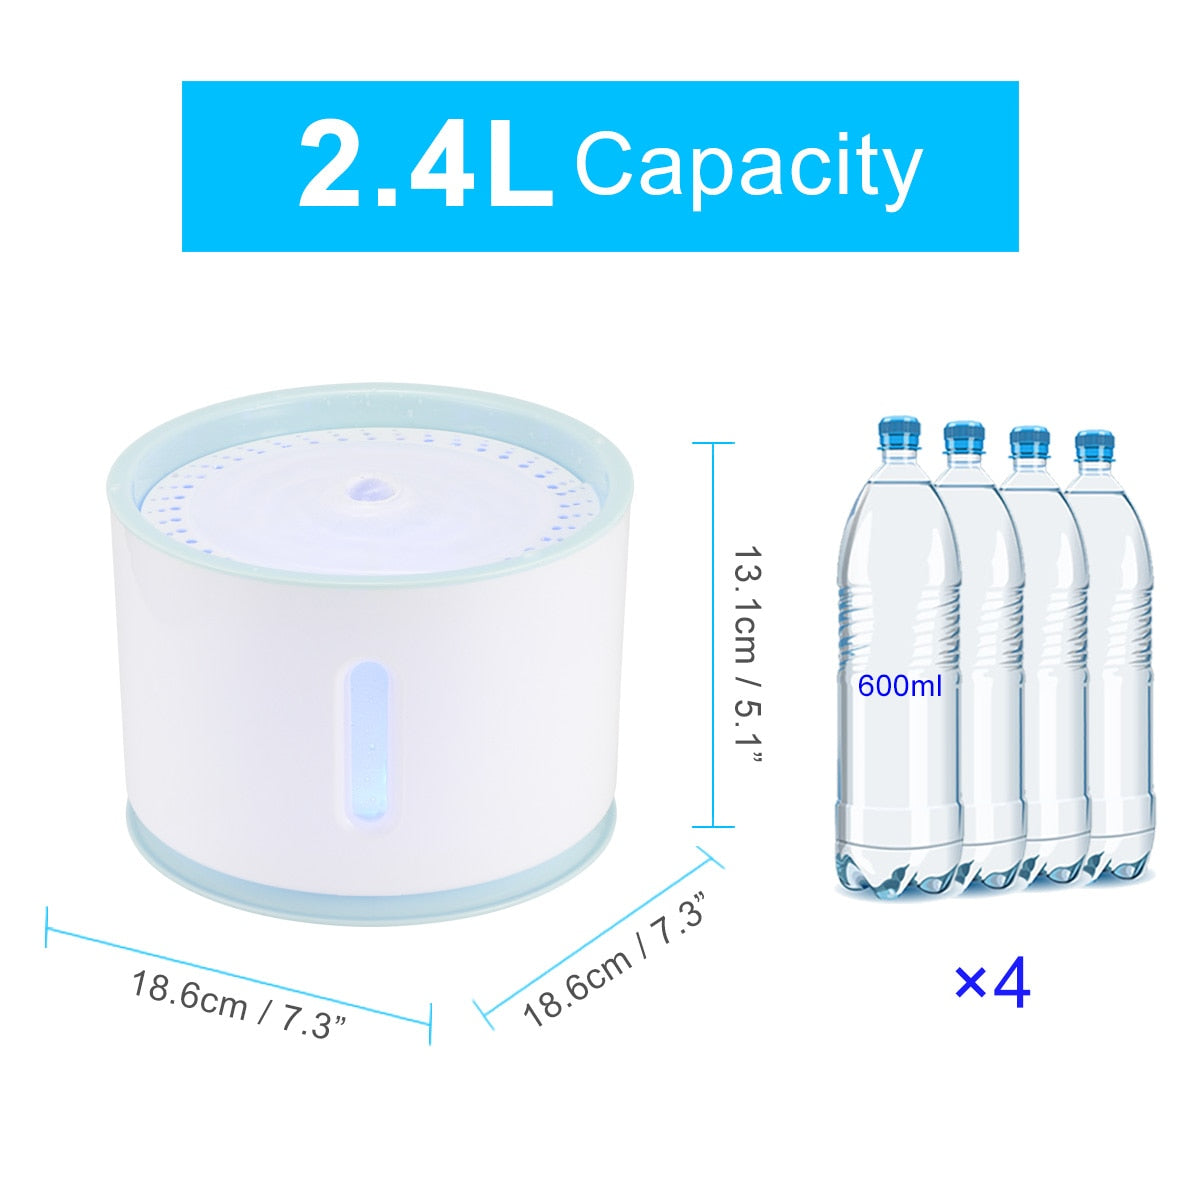 Capacity of the cat water fountain is 81oz/2.4L, which is same as 4 medium sized mineral bottles.